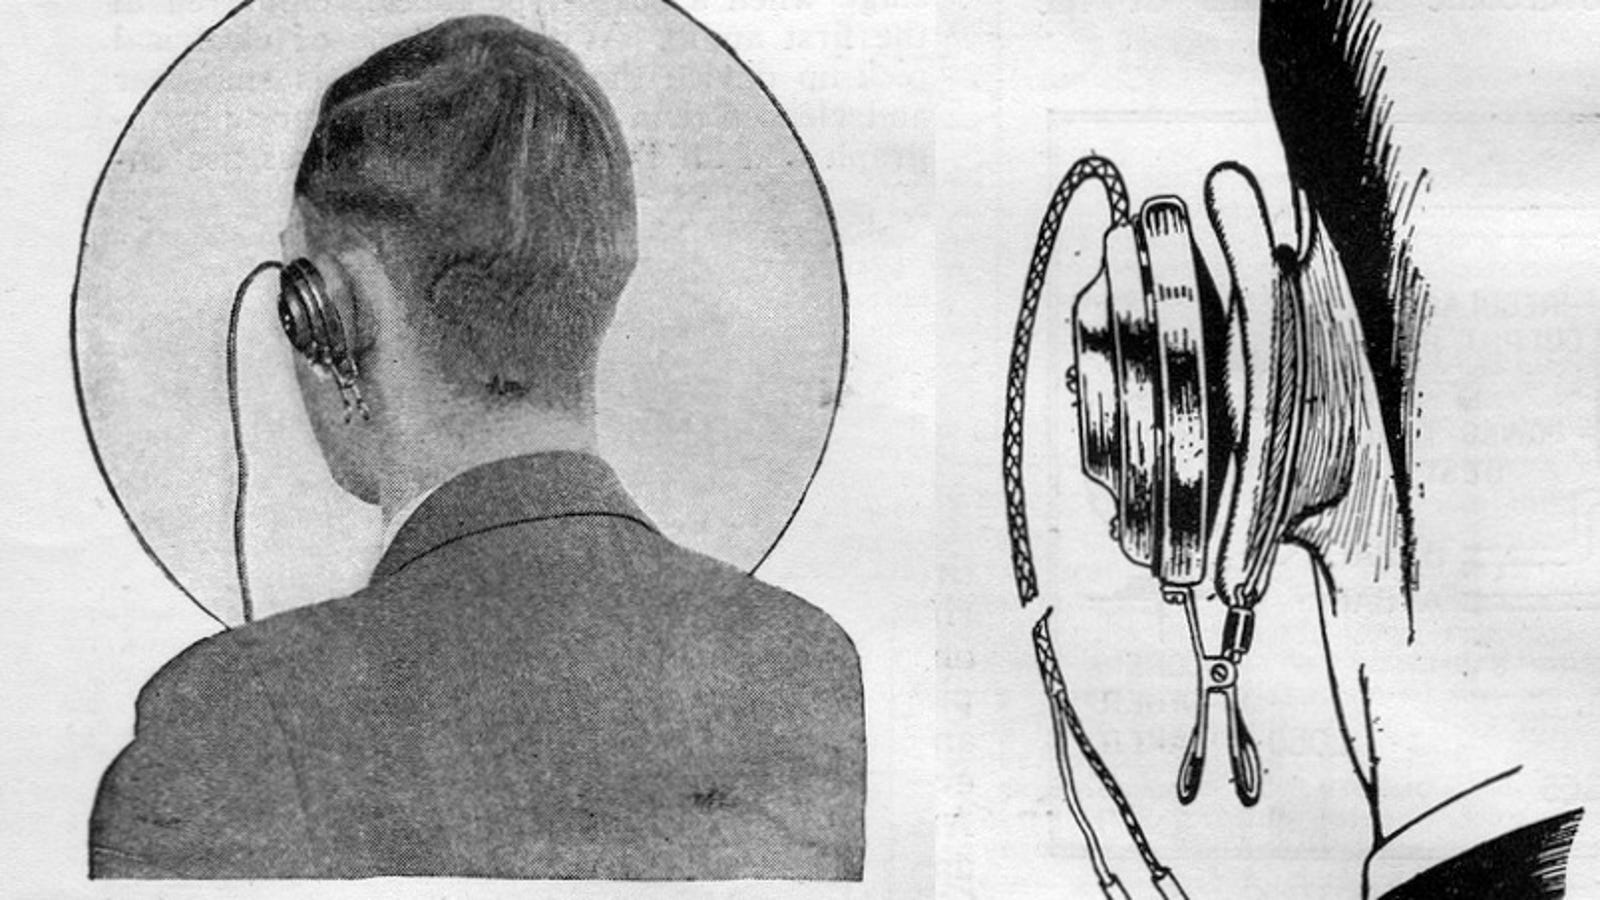 beats wireless headphones hd - These Headphones From 1927 Look So Much Worse Than Earbuds